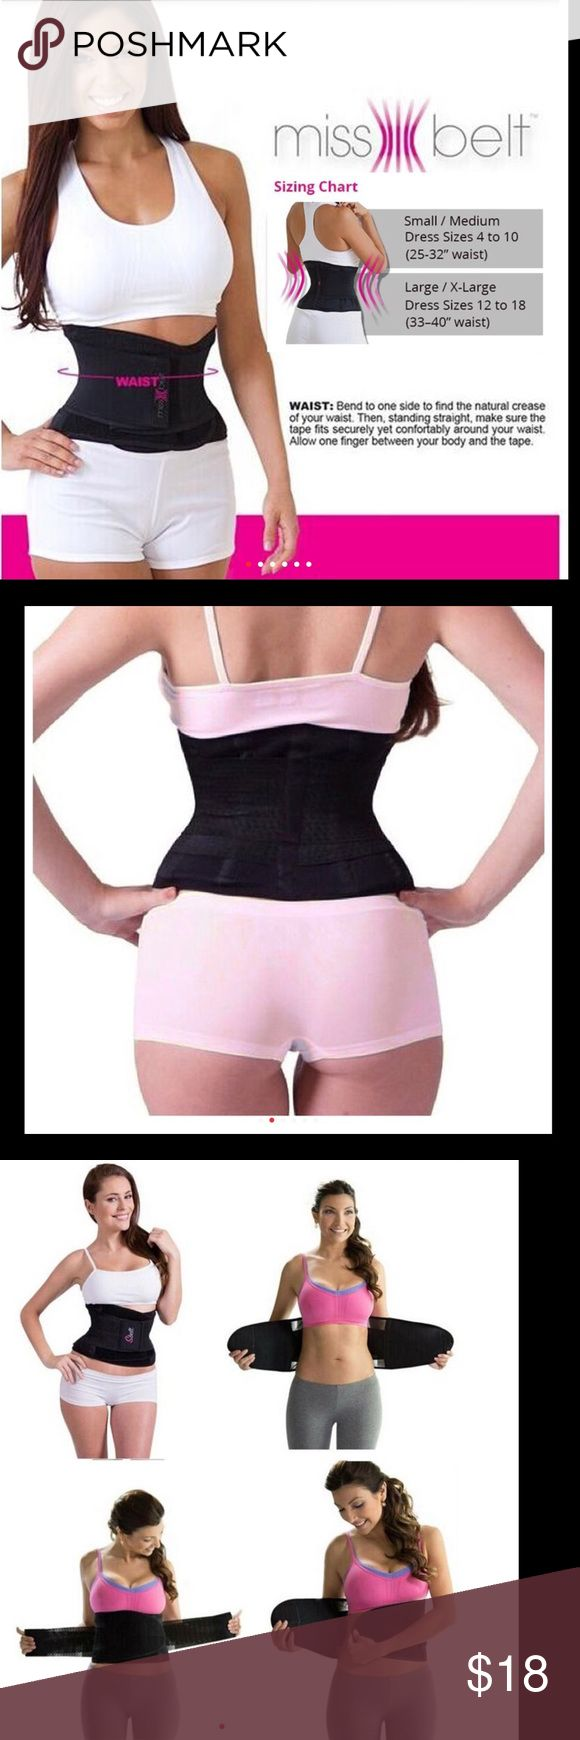 Miss Belt Training Belt Slim Waist Shapewear Women Miss Belt Training Belt Slim Waist Shapewear Women Tummy Tuck Belt Hourglass Waist Slim Strap Modeling Girdle Waist Trainer Accessories Belts